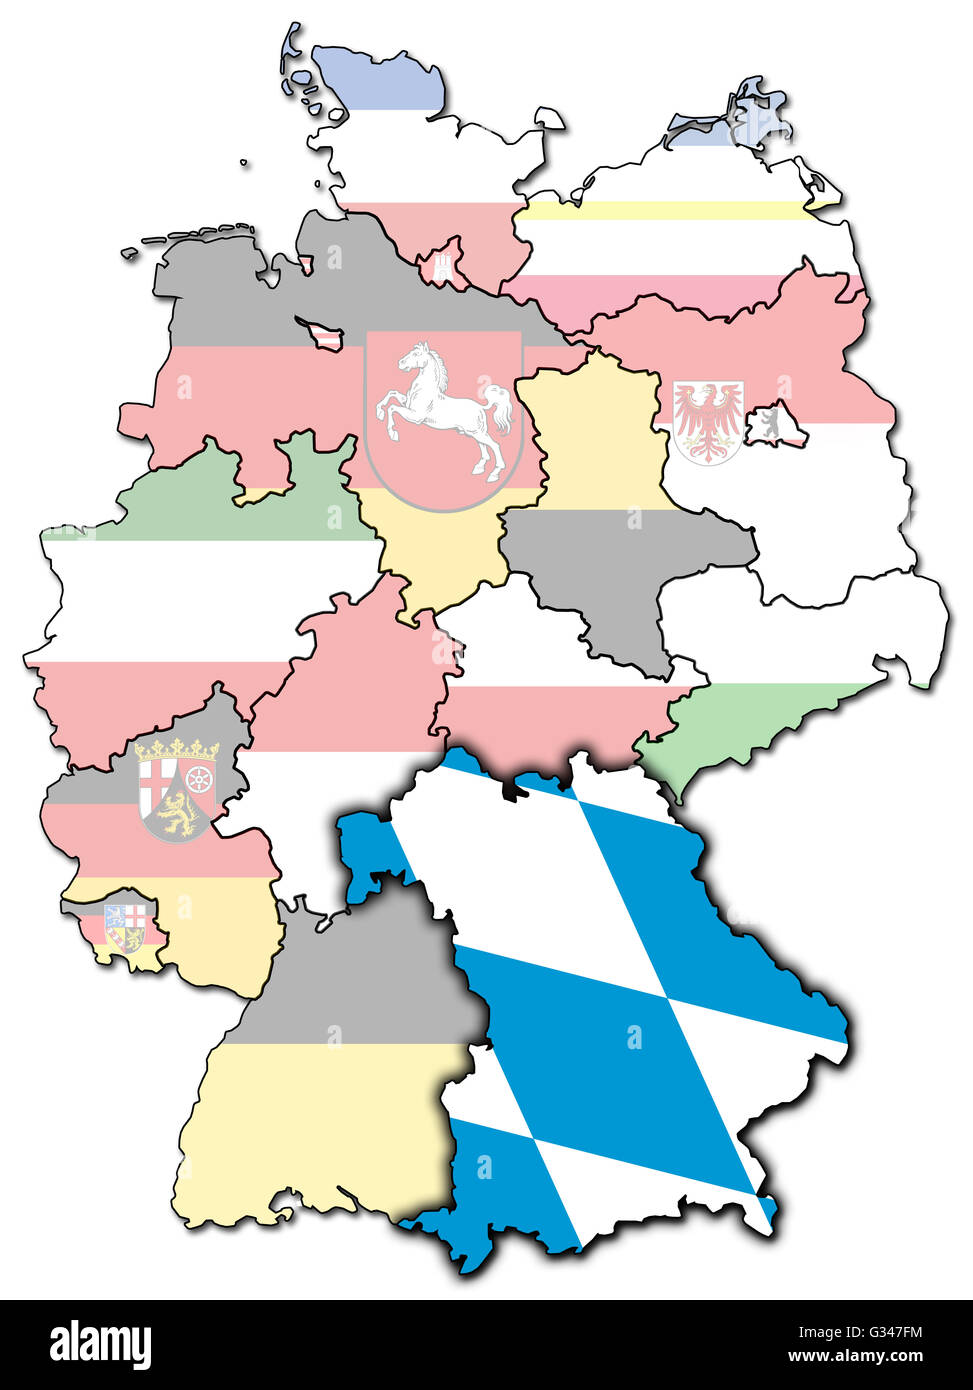 Bavaria On Old Administration Map Of German Provinces States - Germany map provinces